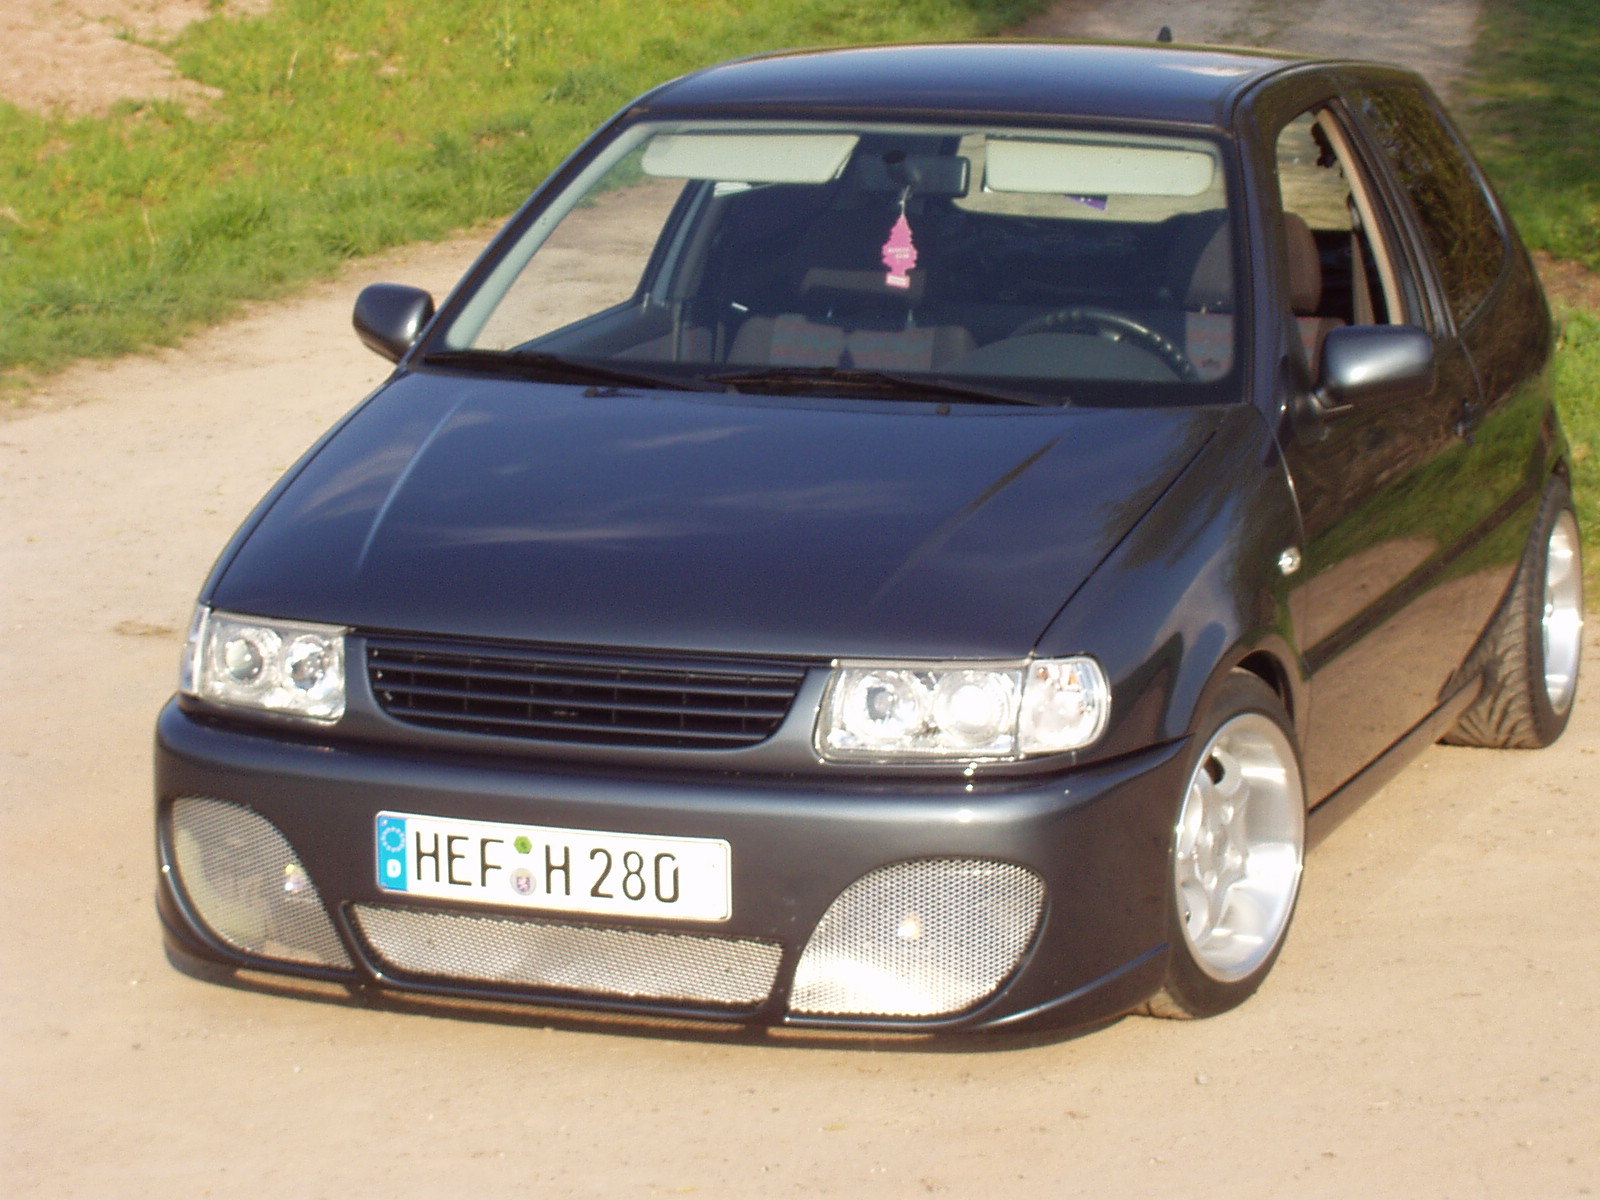 Superswamperq78's 1999 Volkswagen Polo